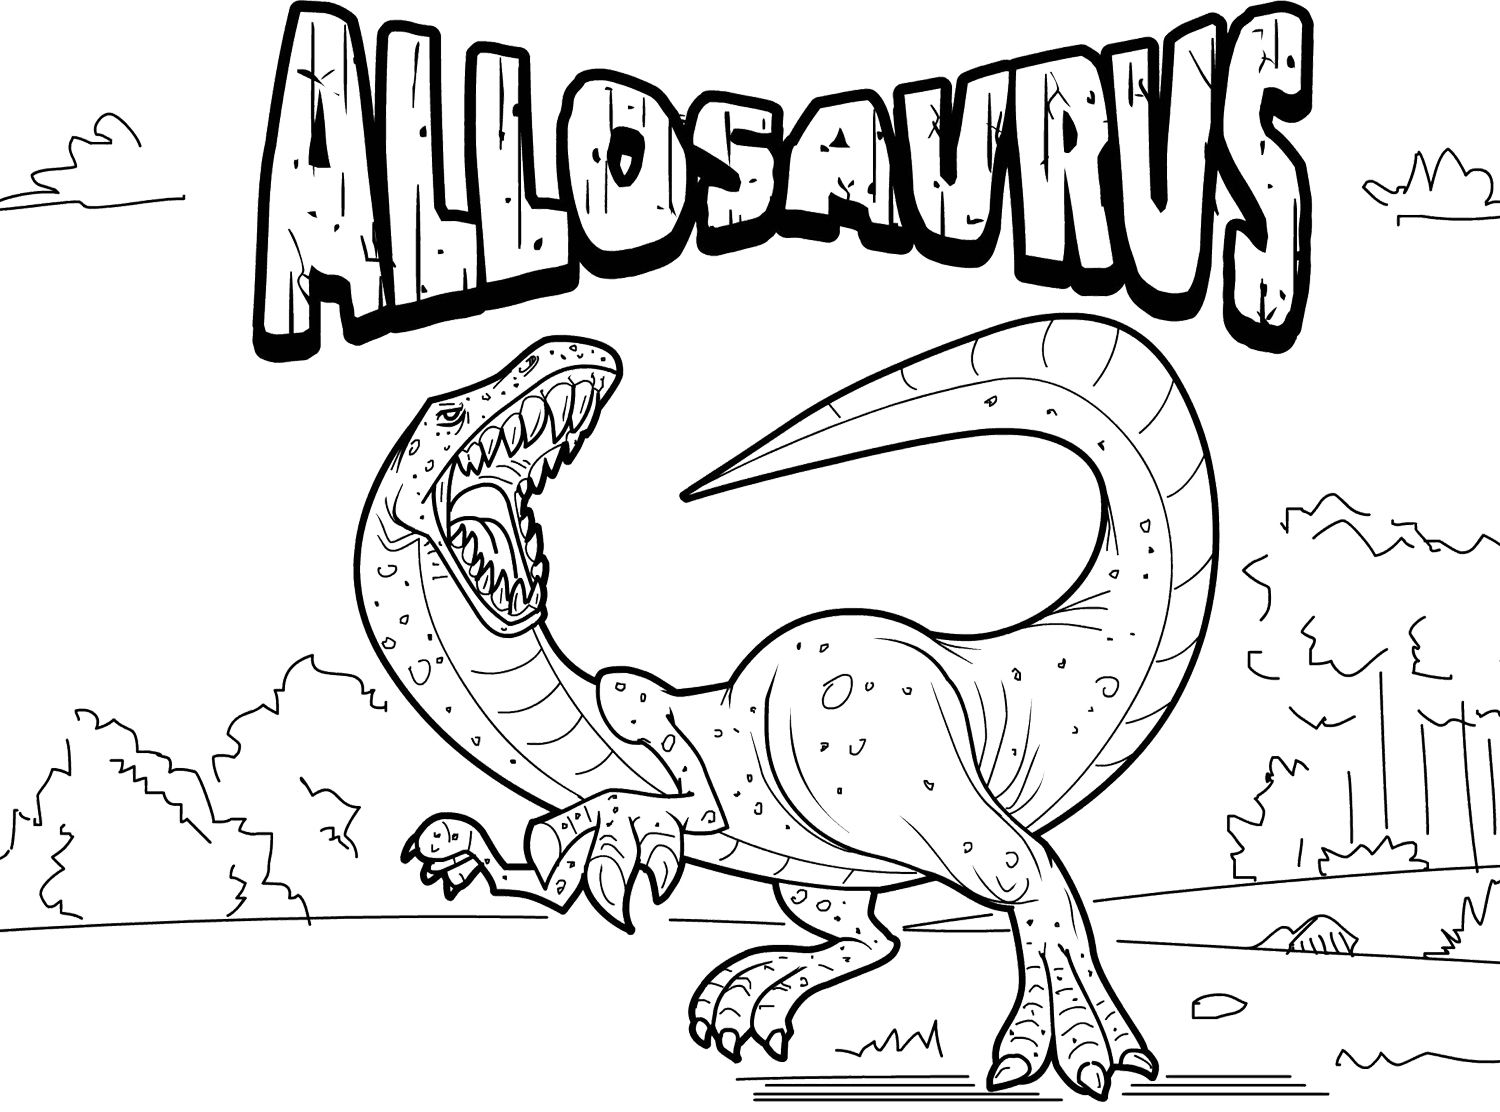 Allosaurus Coloring Page Dinosaur Coloring Pages Dinosaur Coloring Unicorn Coloring Pages